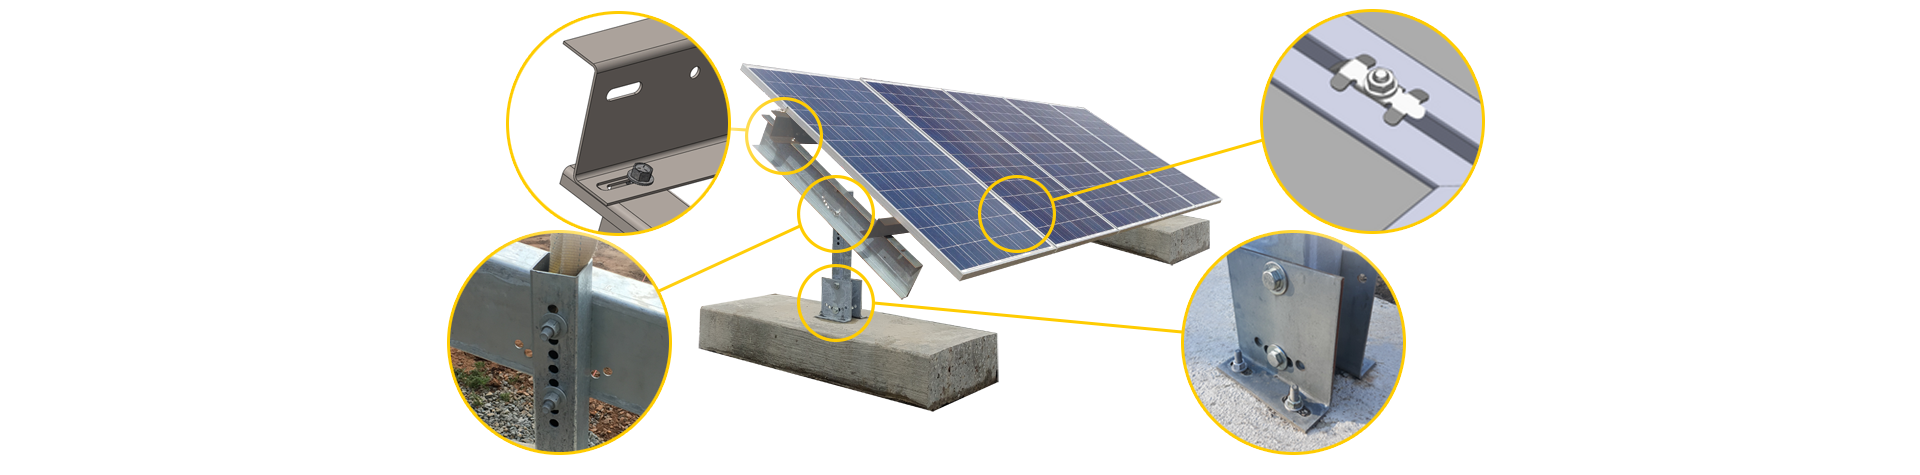 Ballasted solar ground mount with five panels mounted in portrait orientation.